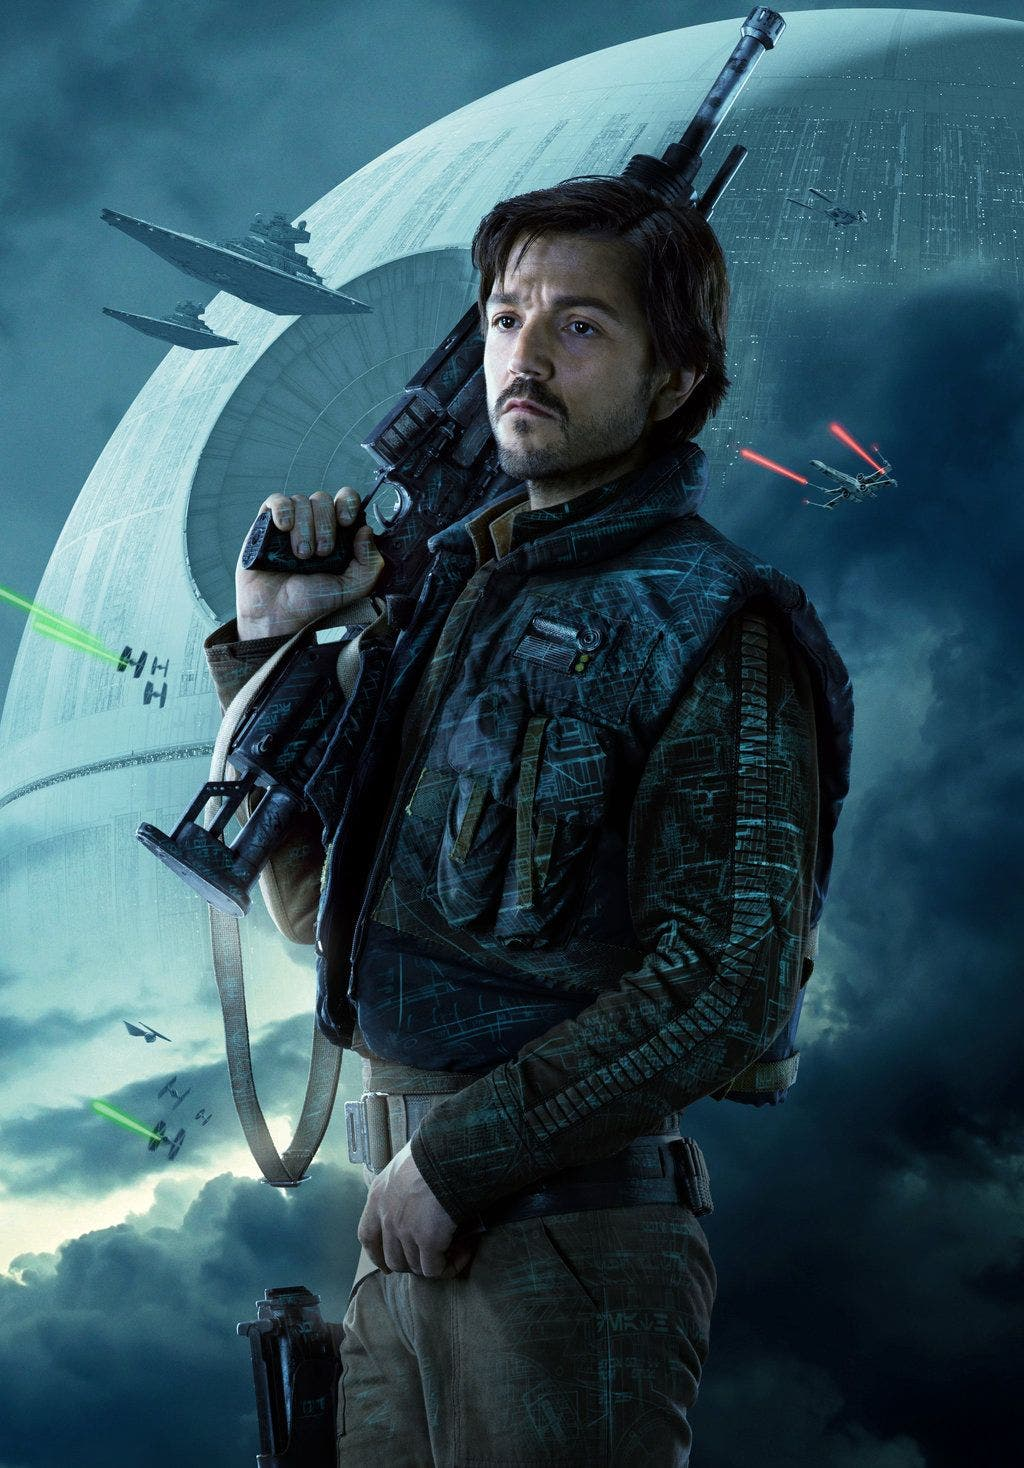 Star Wars Cassian Andor series